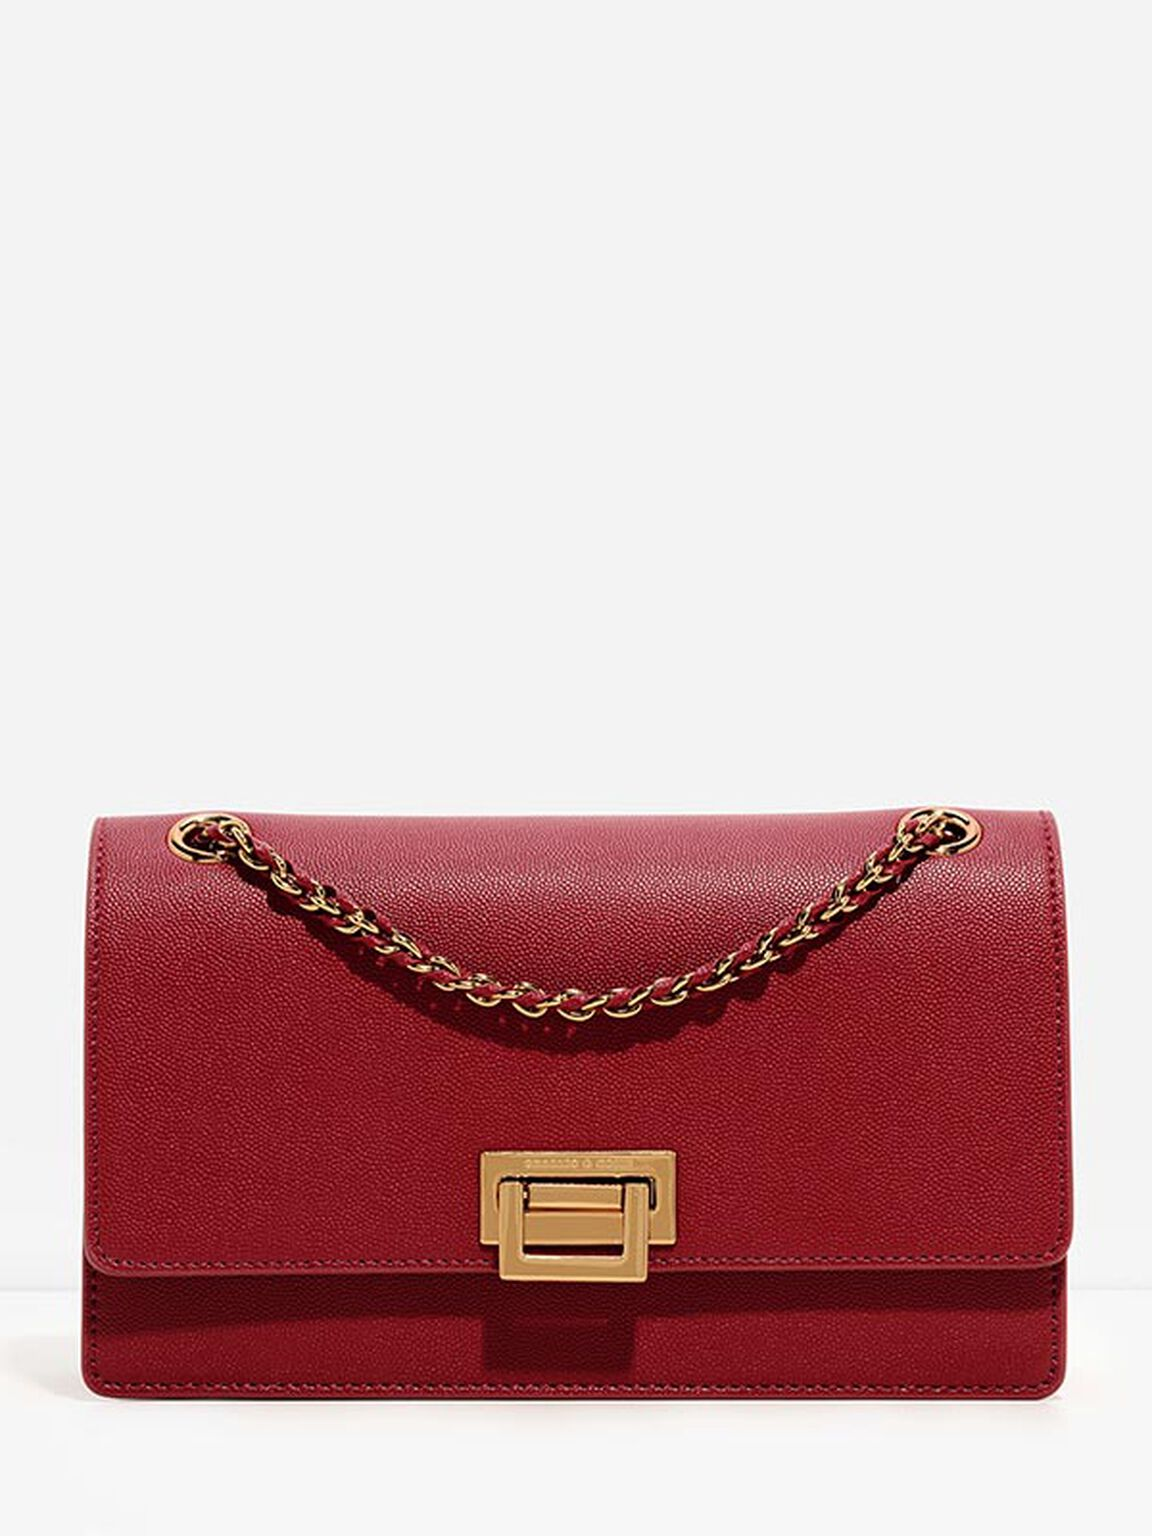 Weave Chain Shoulder Bag, Red, hi-res